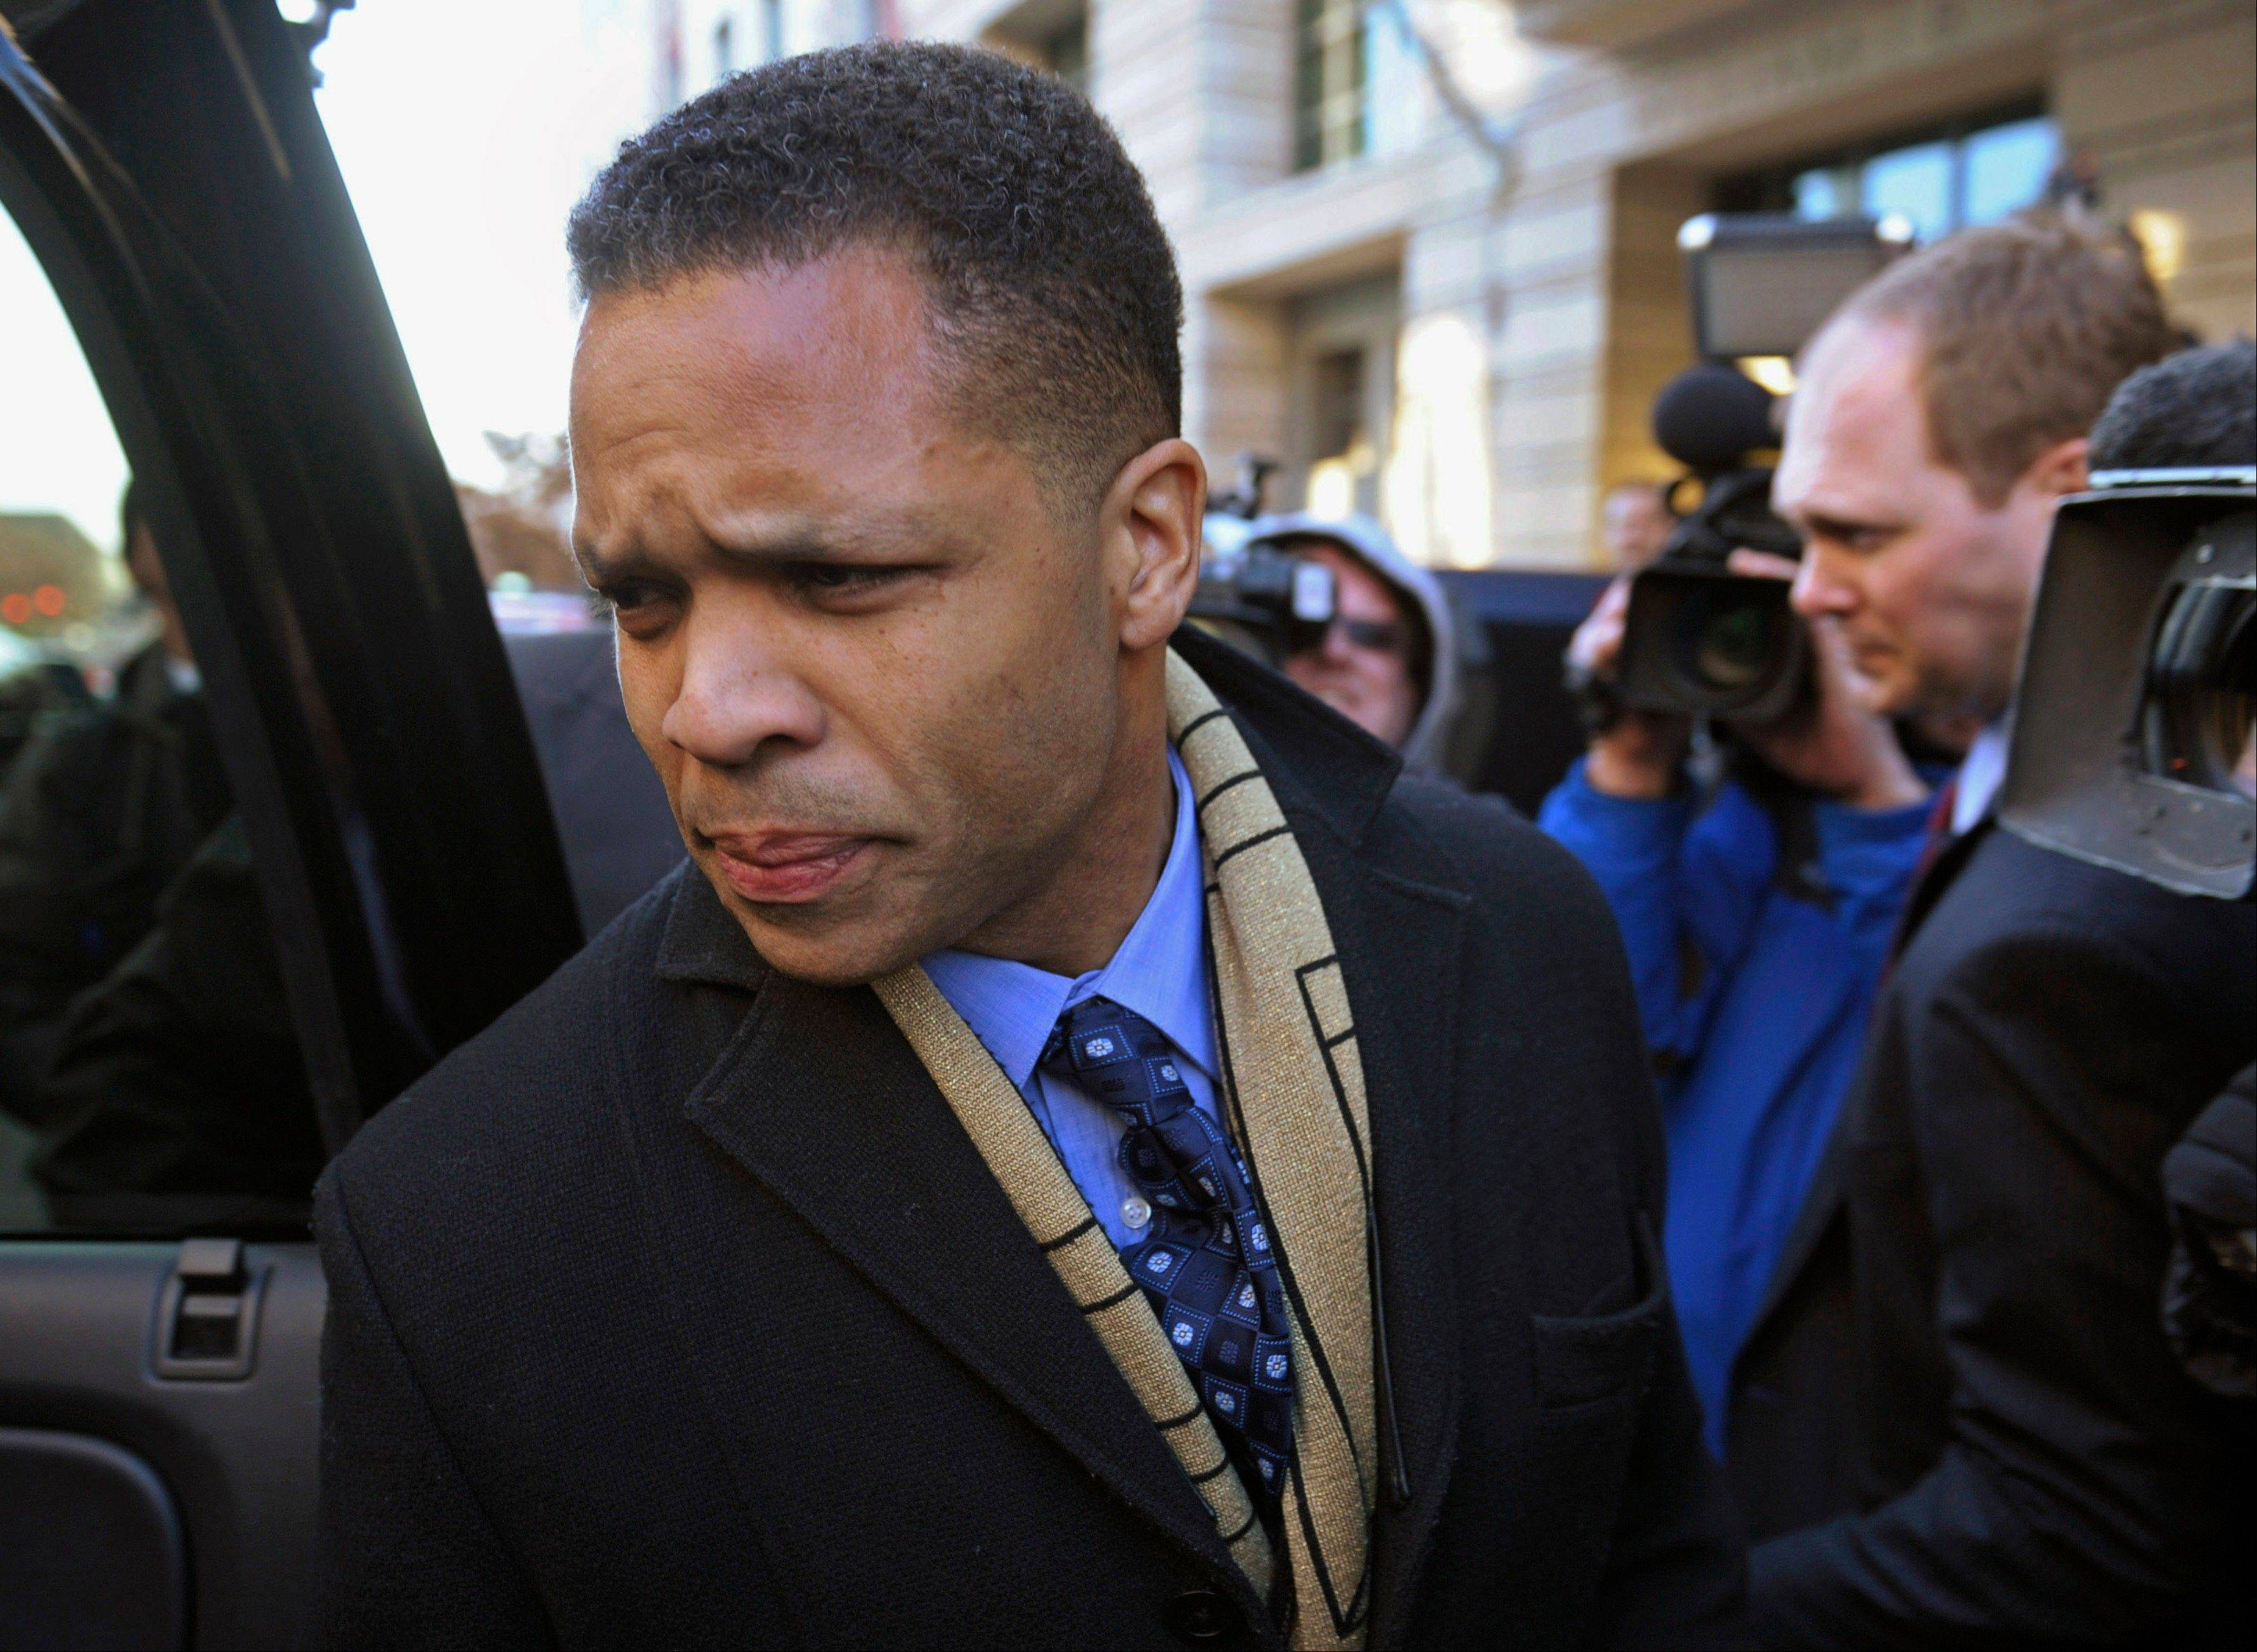 Former Congressman Jesse Jackson Jr. faces nearly five years in prison when he's sentenced in July.